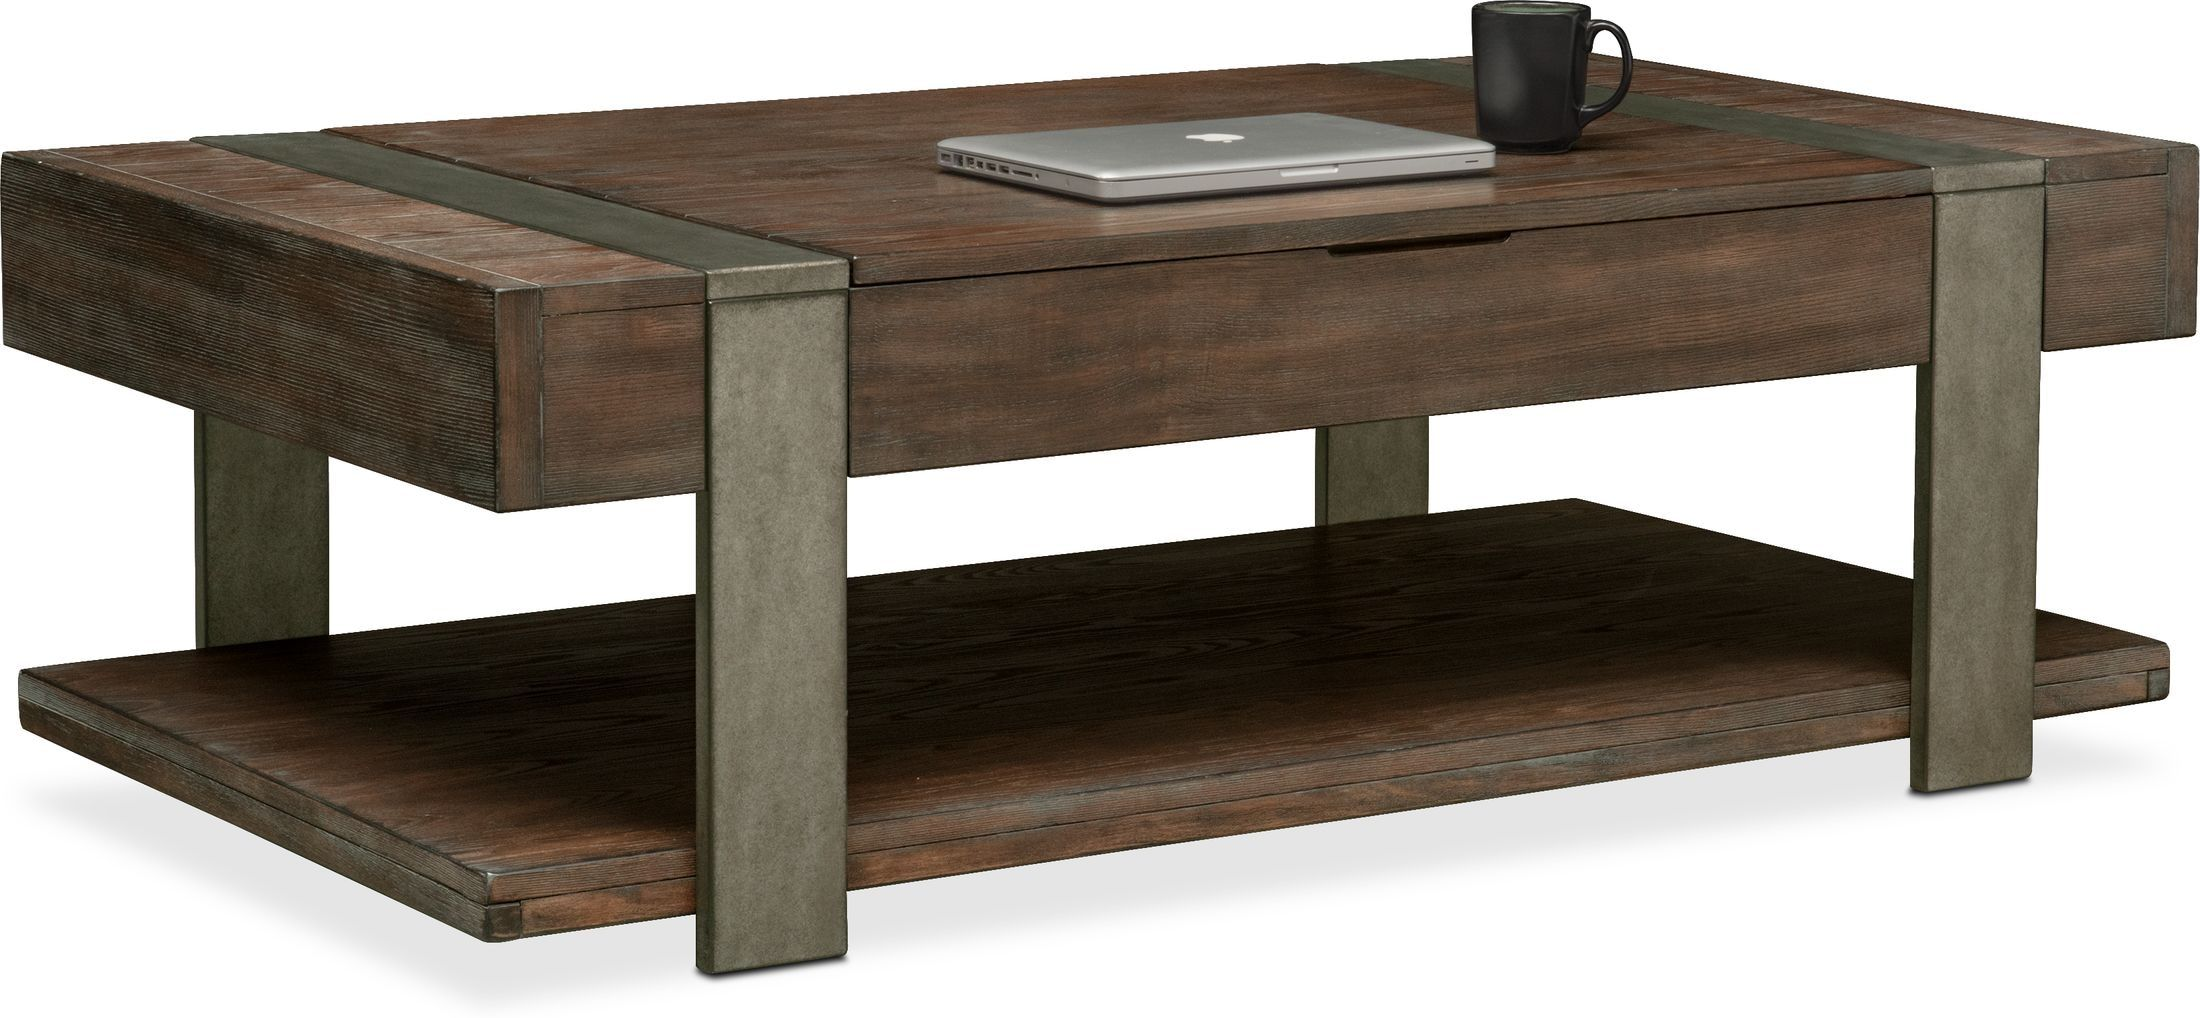 Union City Lift Top Coffee Table Wood Bedroom Furniture Vintage Industrial Furniture Natural Wood Furniture [ 1018 x 2200 Pixel ]